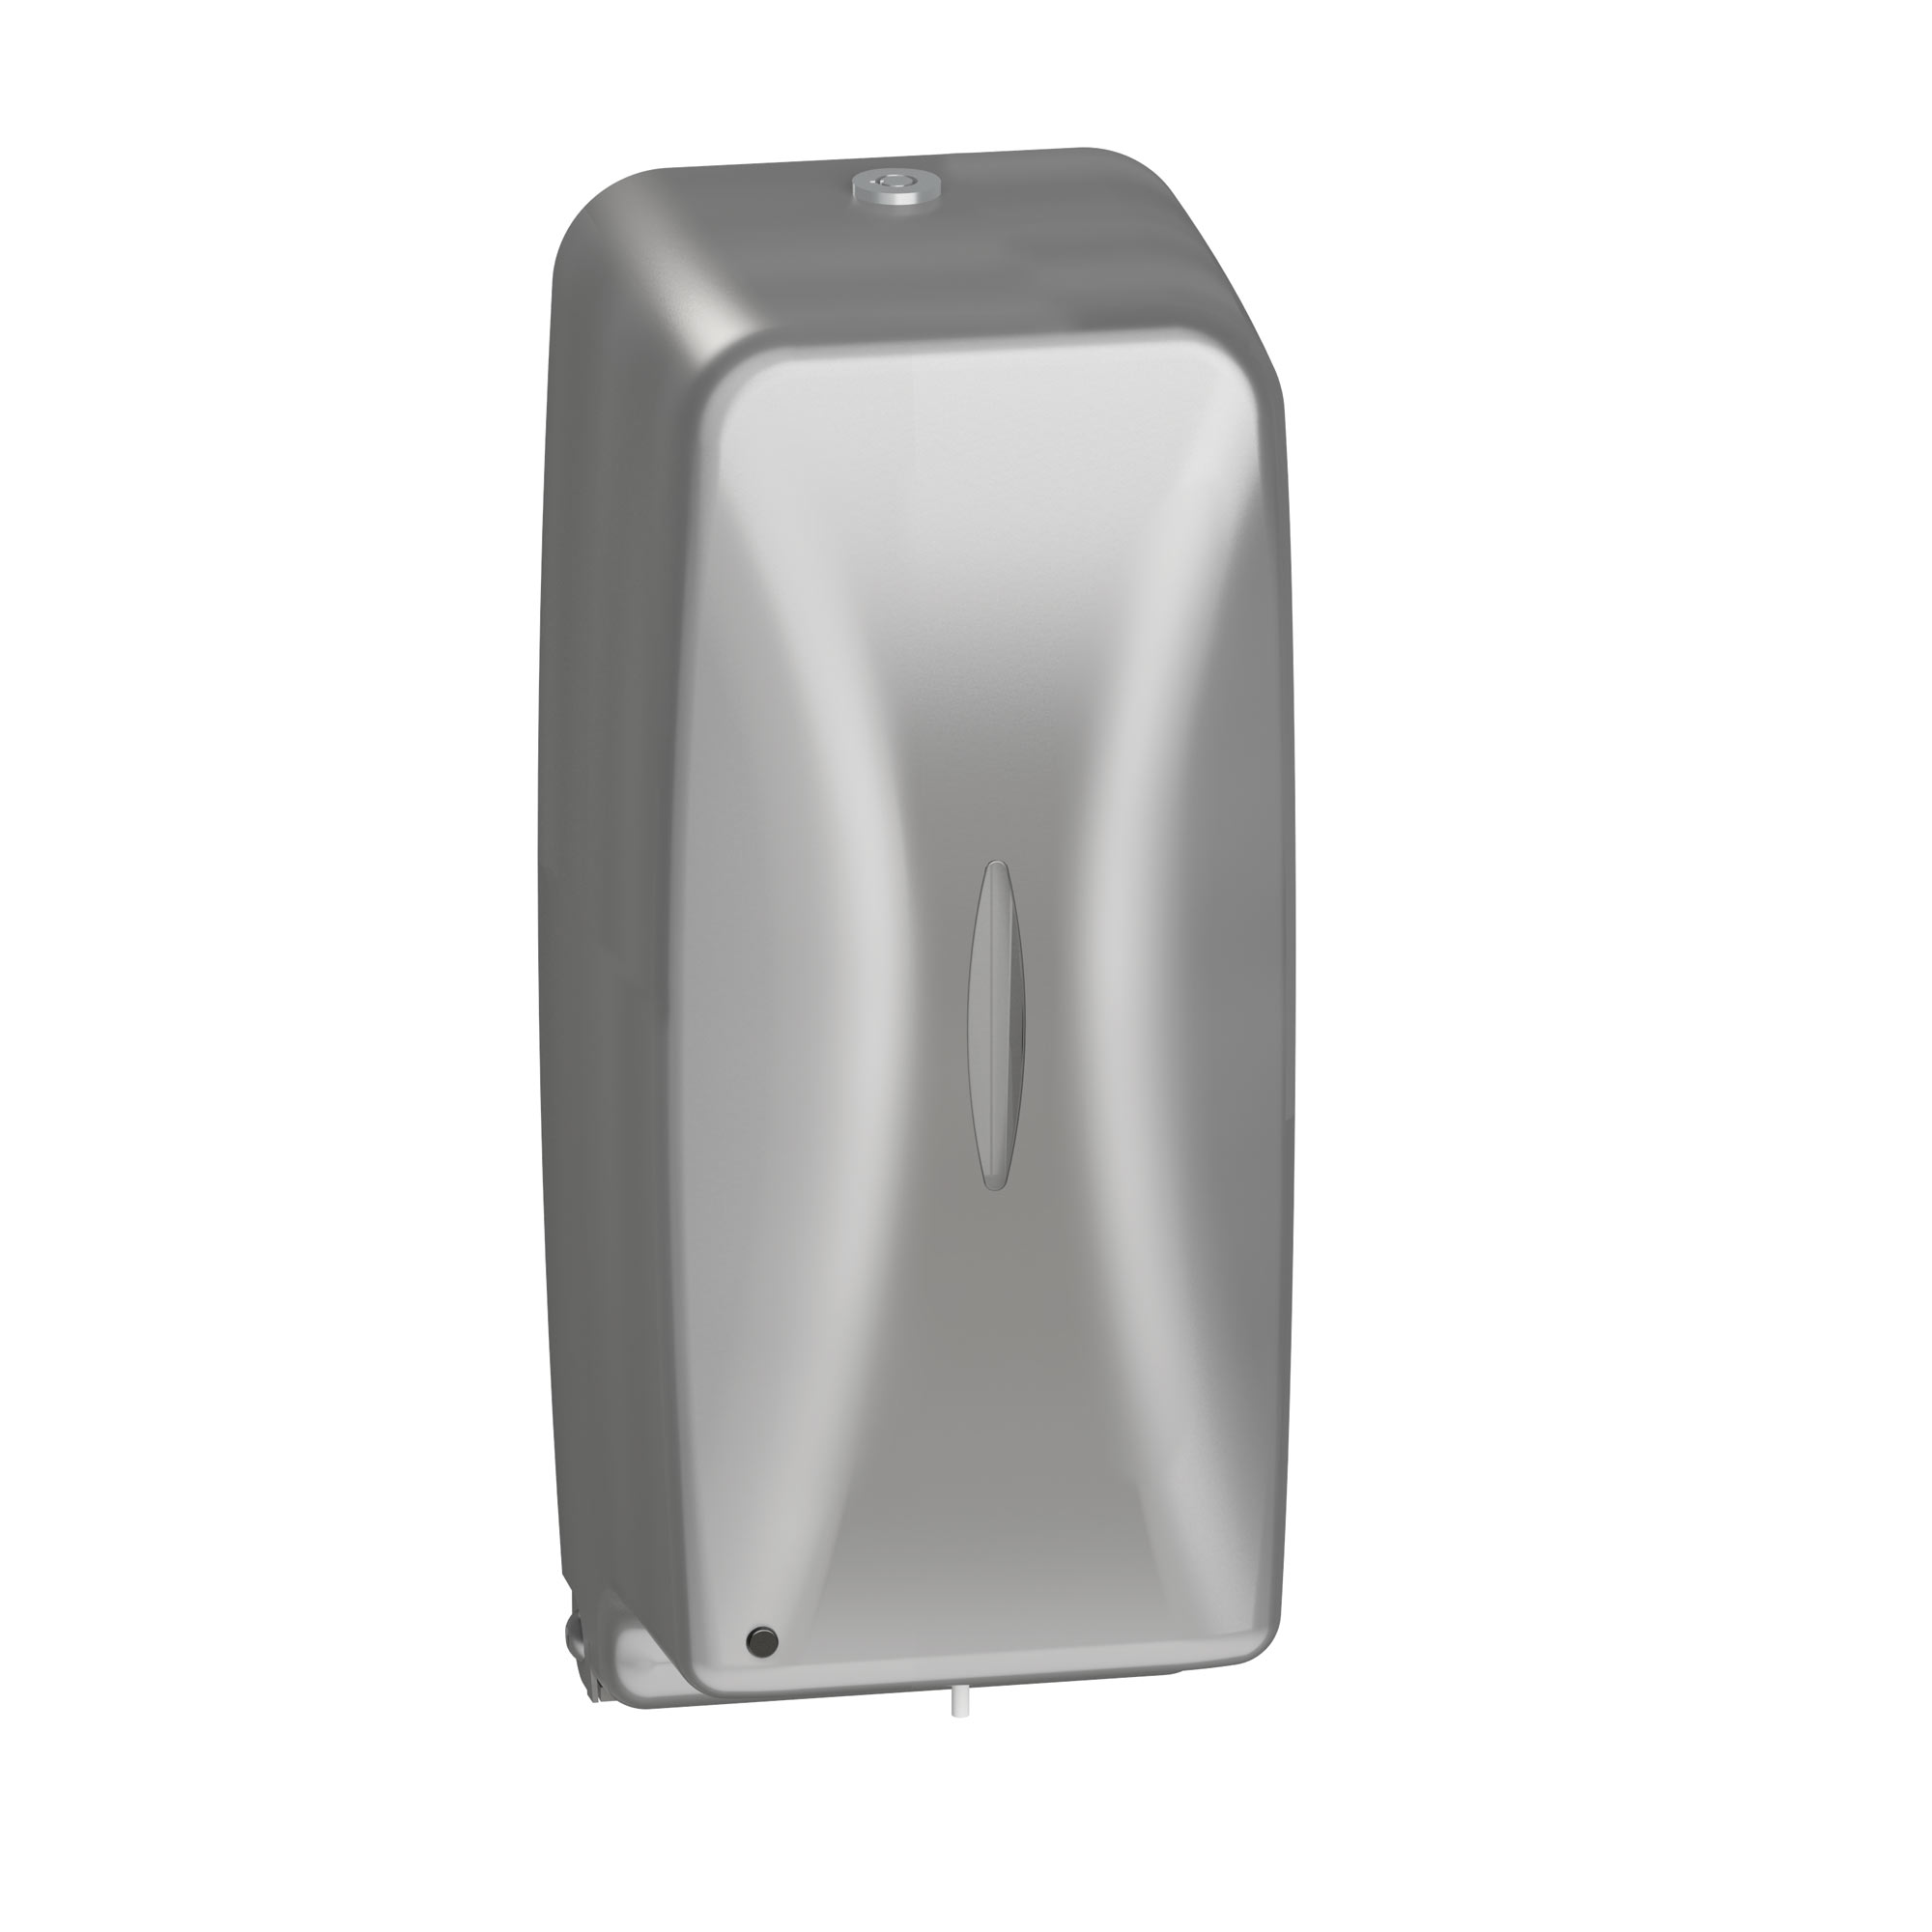 Bradley Bathroom Accessories Diplomat Foam Soap Dispenser  Bradley Corporation